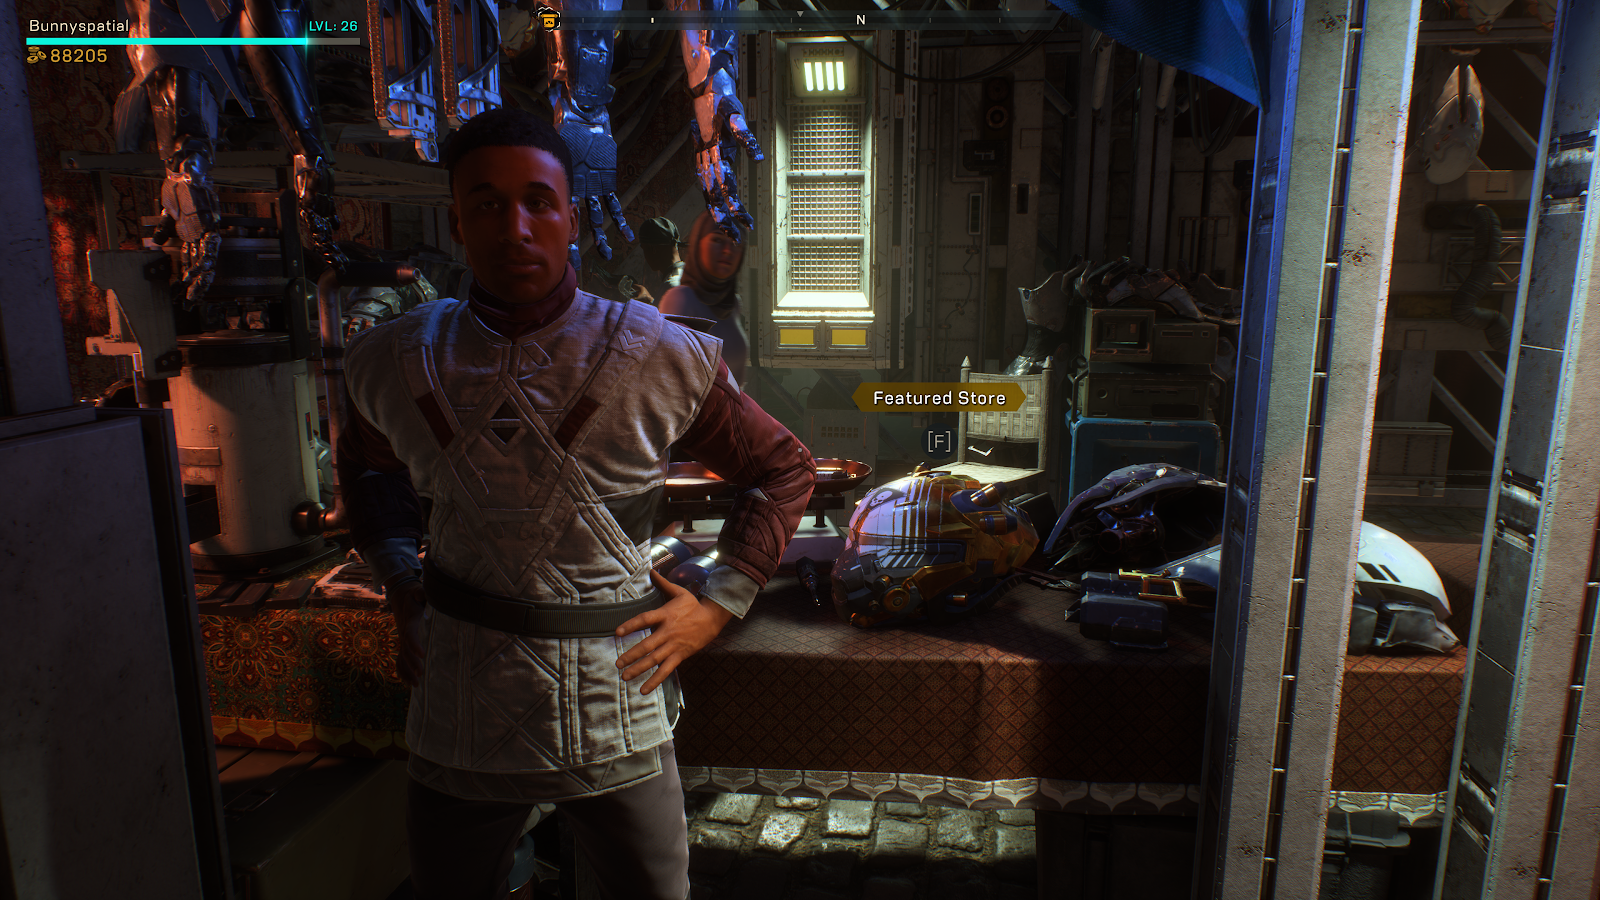 Everything About Anthem's In-Game Stores Is Bafflingly Bad